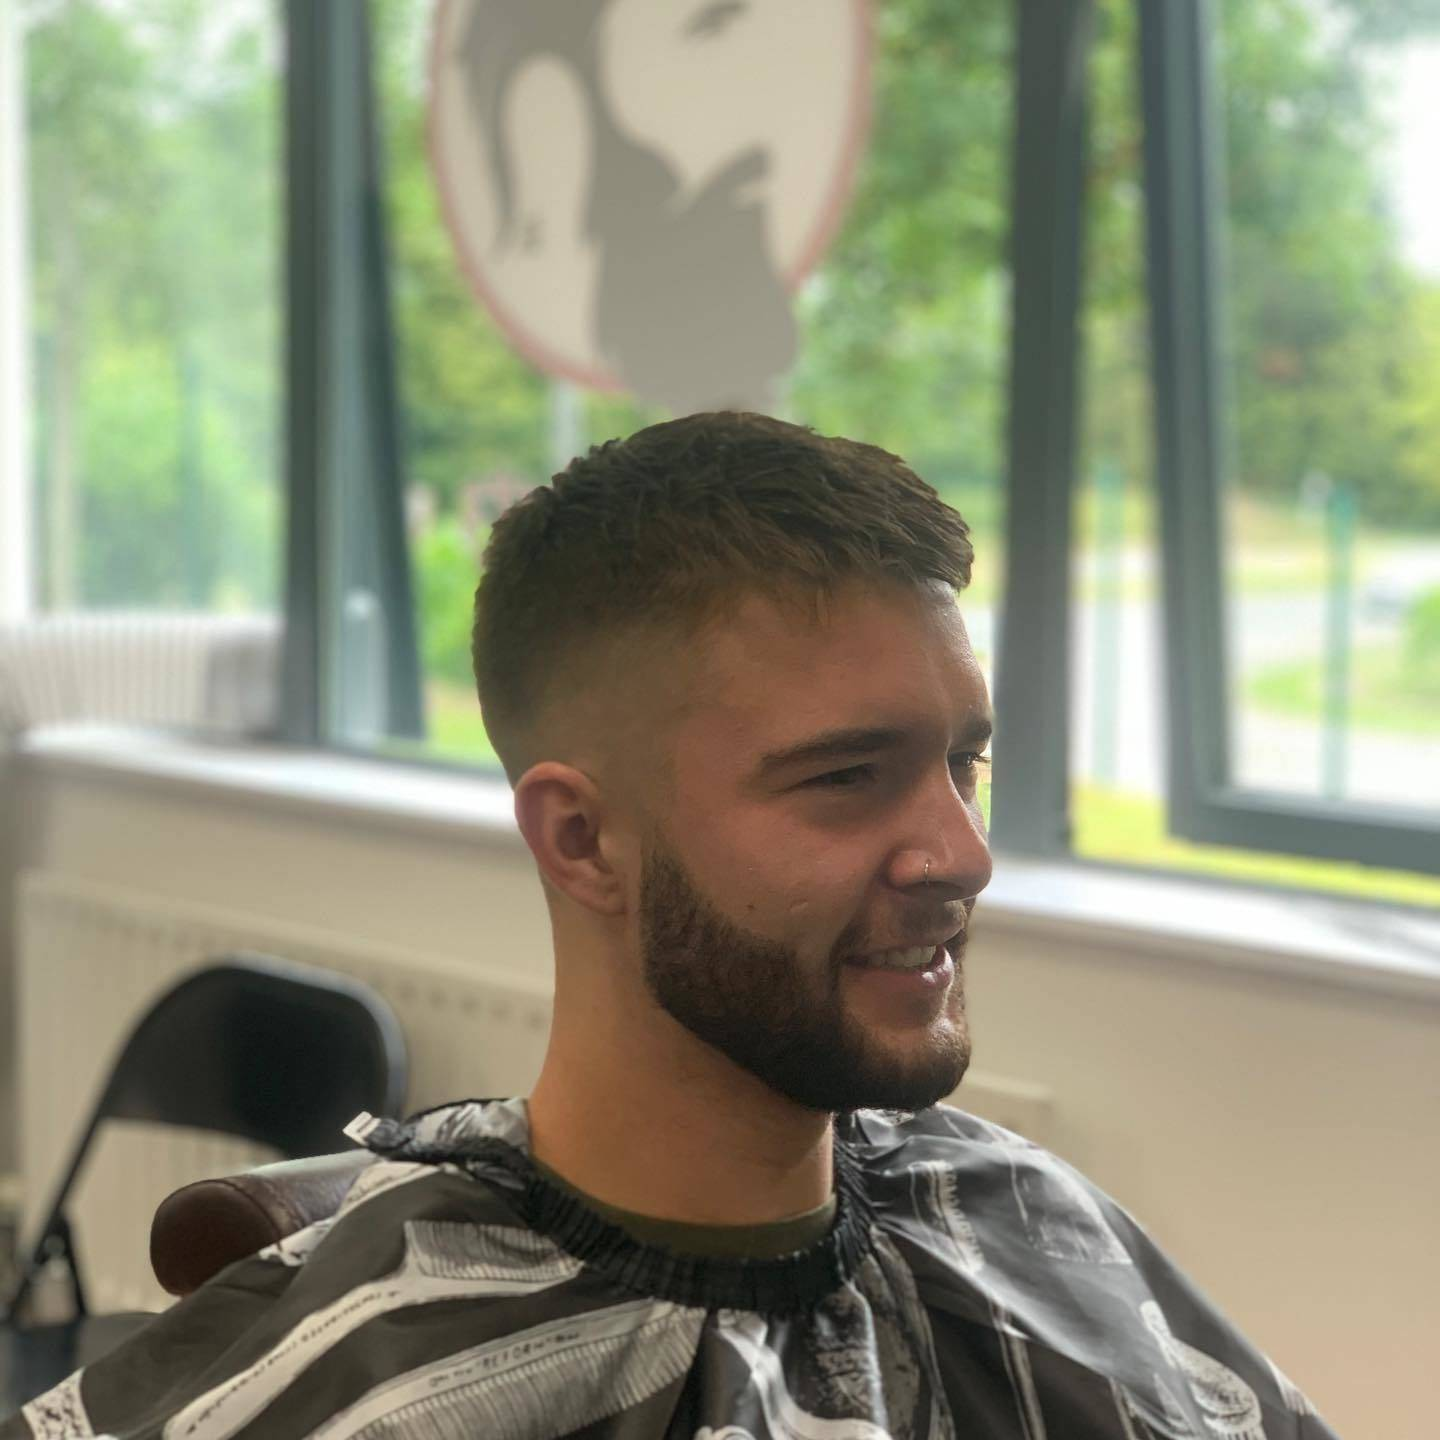 Changing it up today #lovinthechange #ruffcutzbarbers #mk#mkbarber#linfordwoodeast